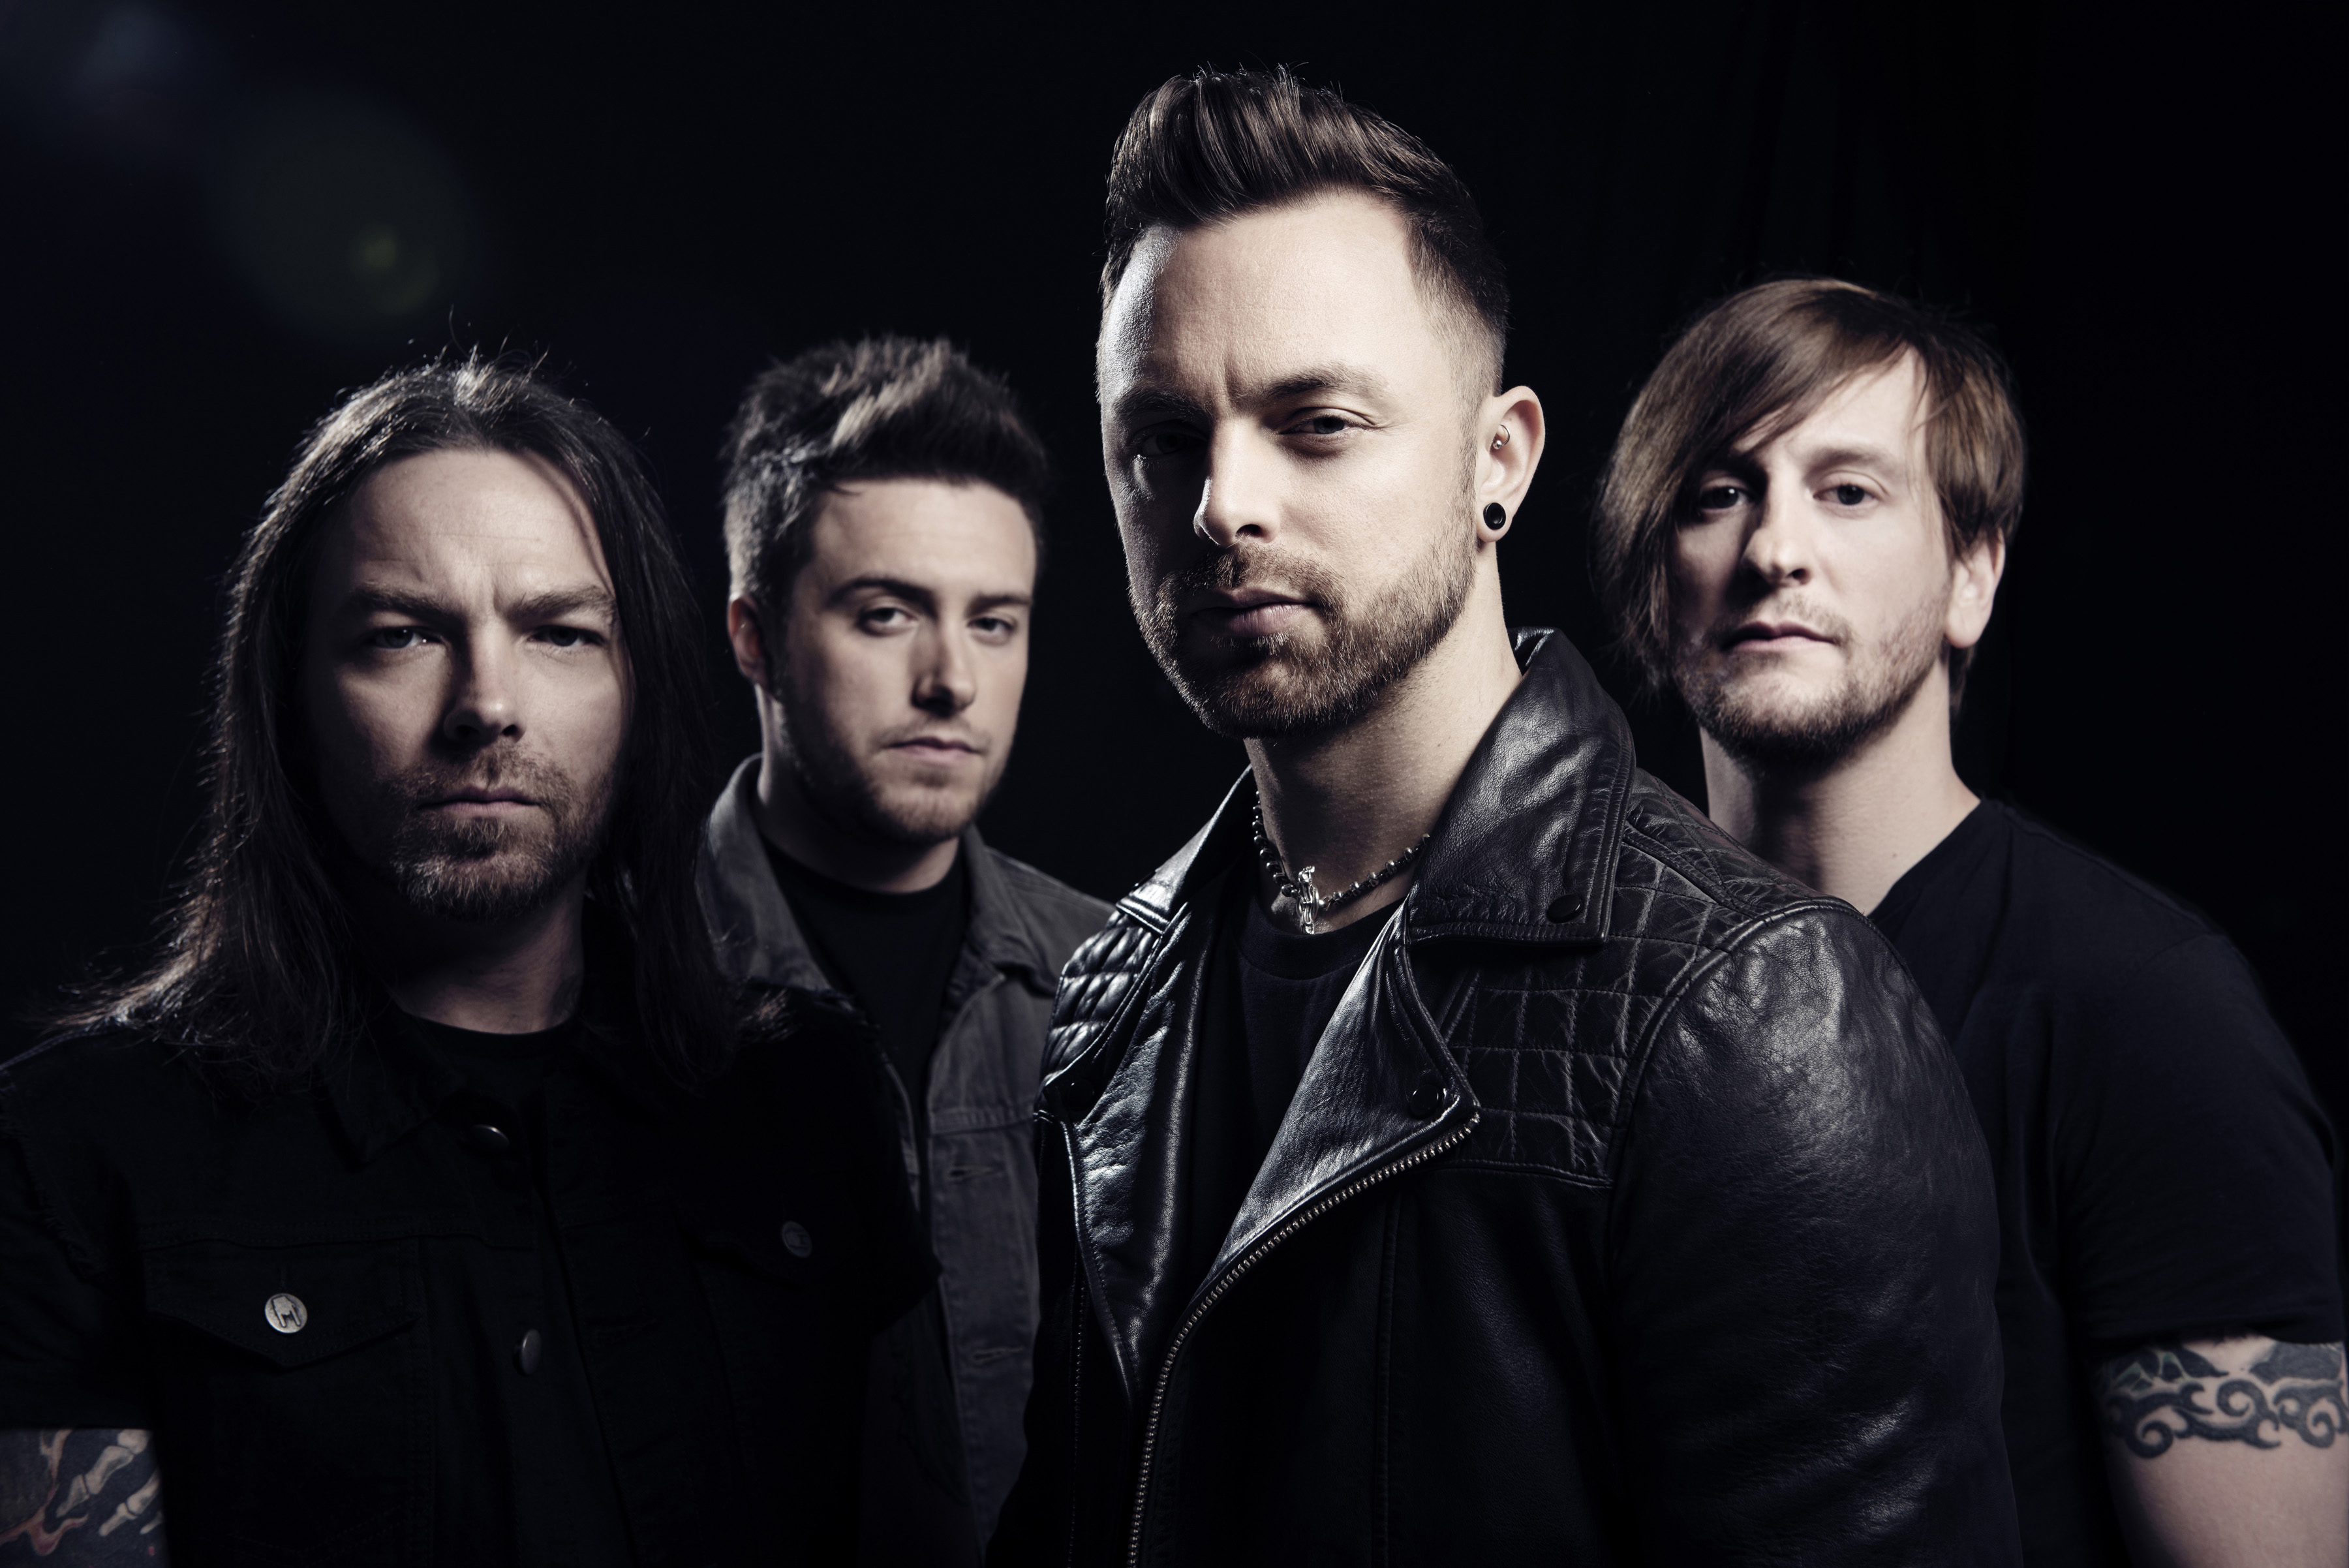 Bullet For My Valentine Hd Wallpaper Background Image 3600x2403